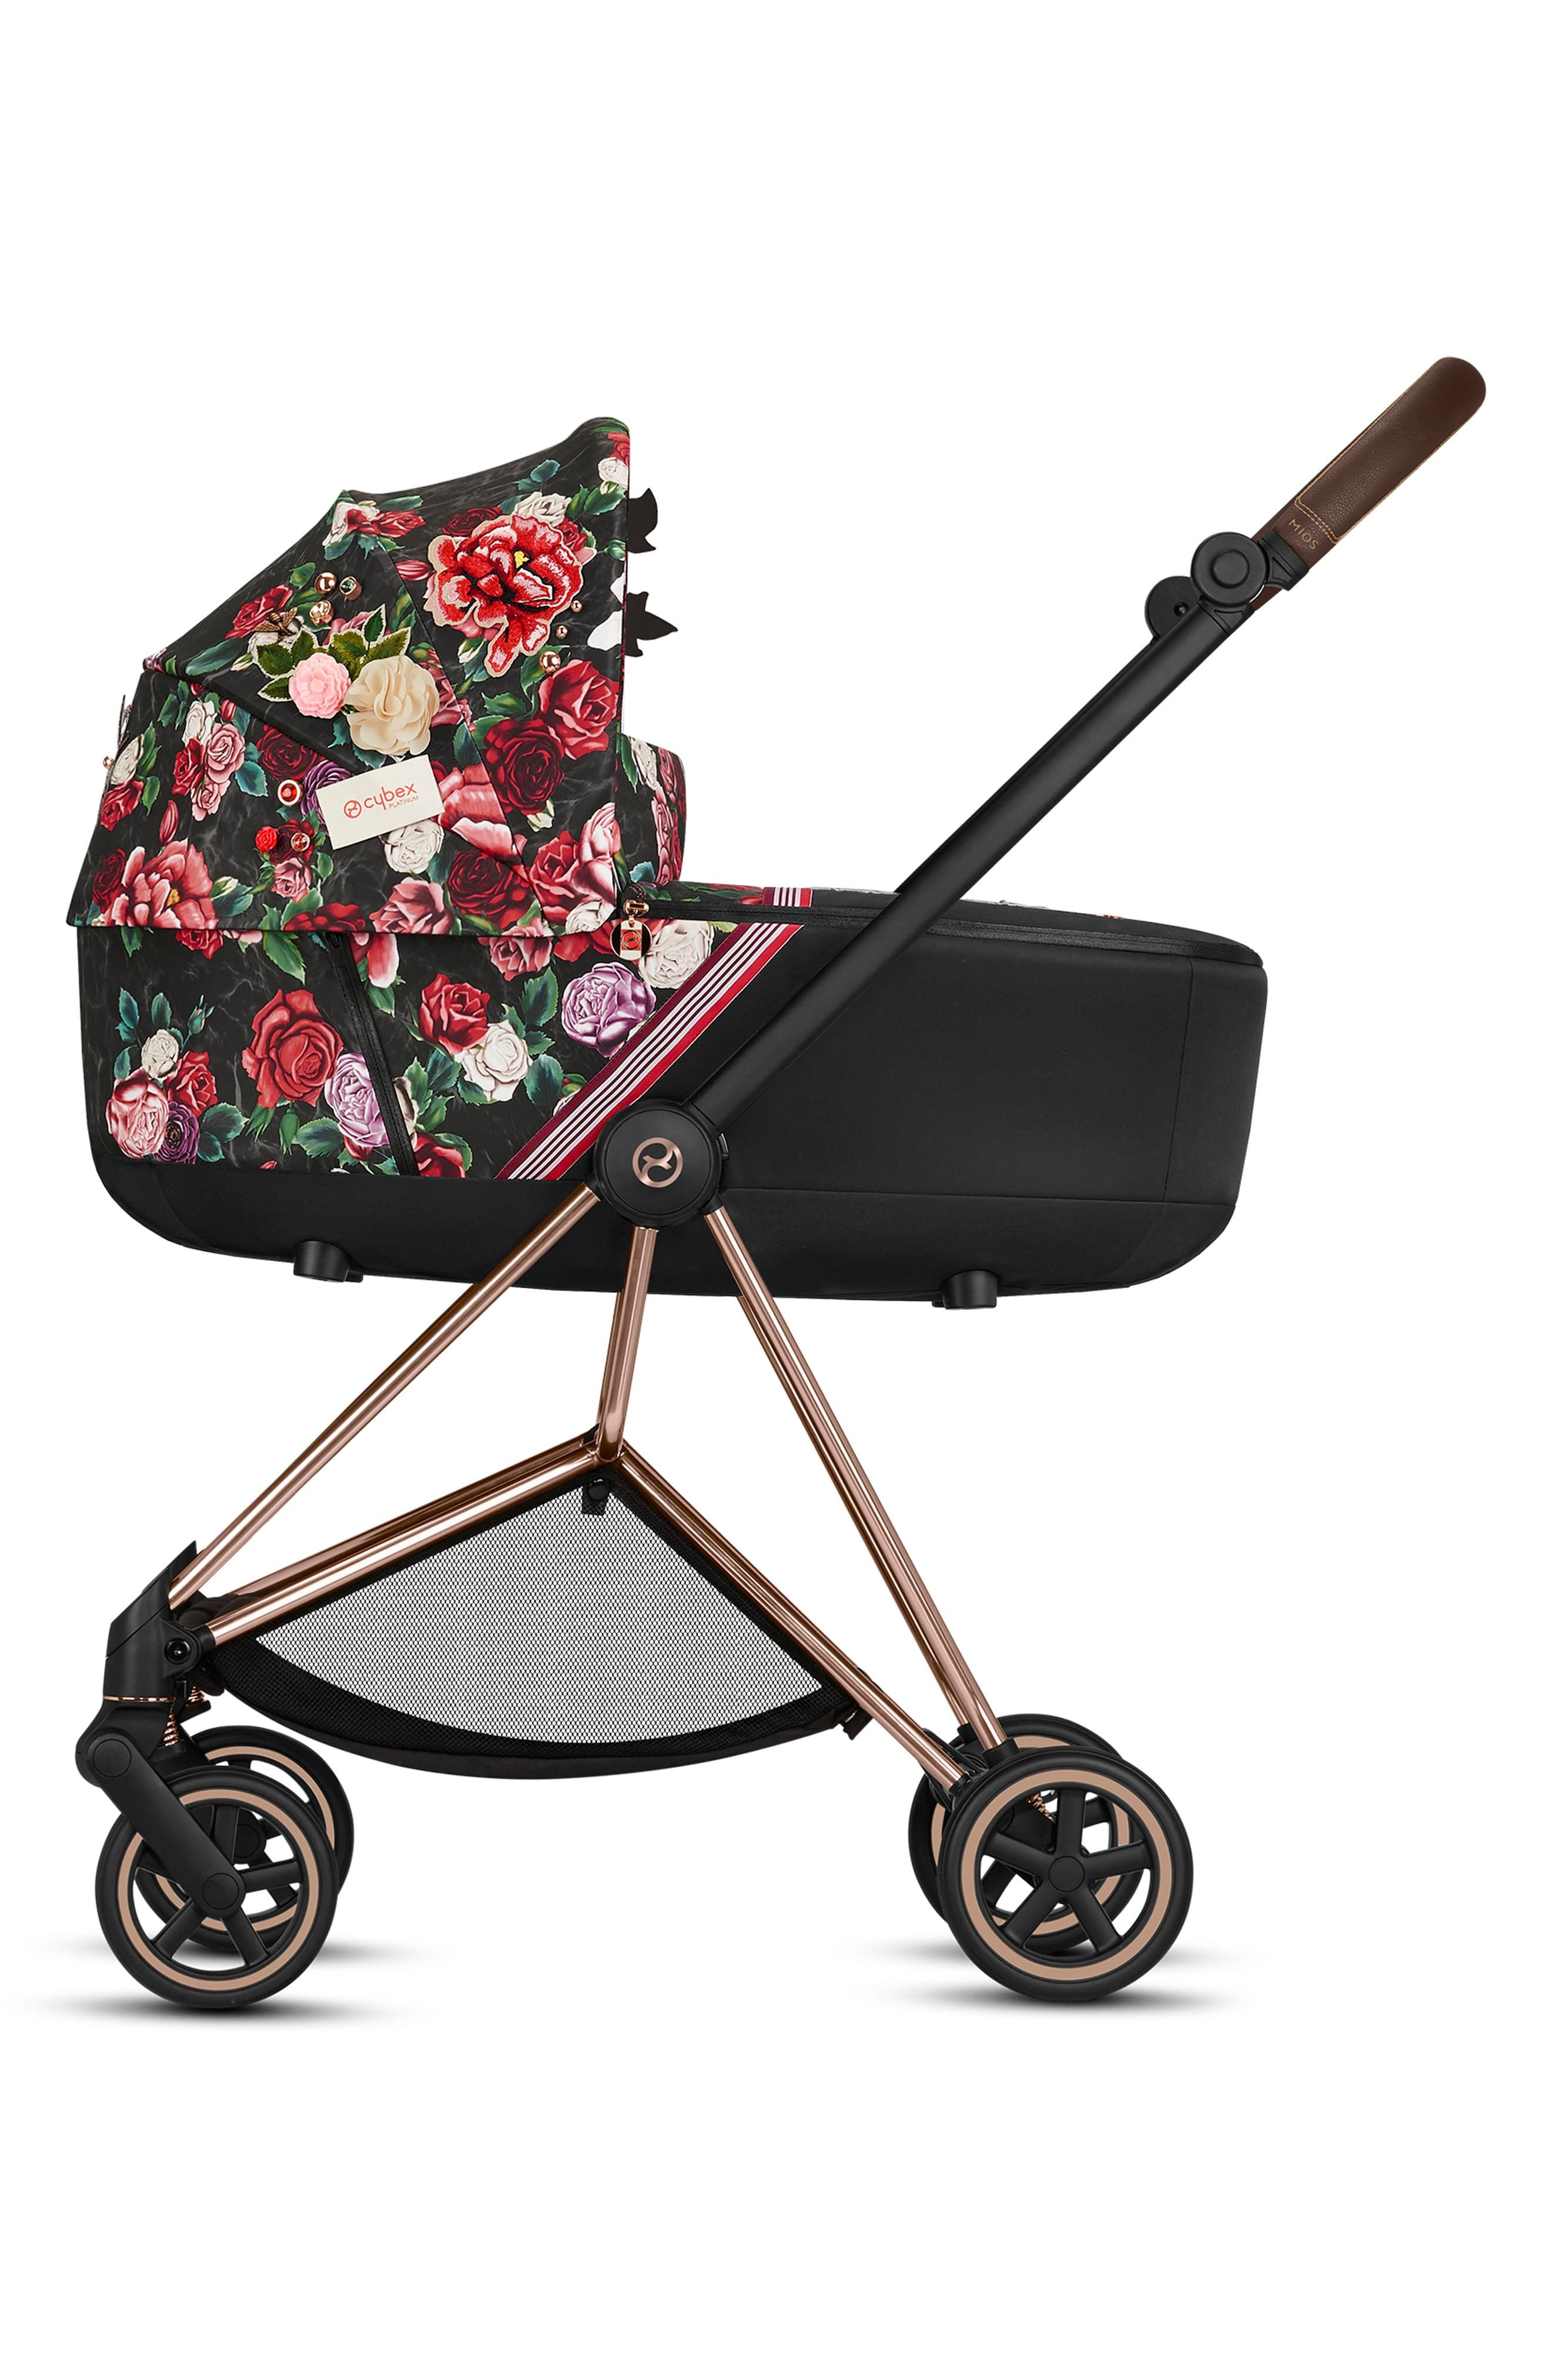 CYBEX Sprint Blossom Mios Lux Carrycot available at